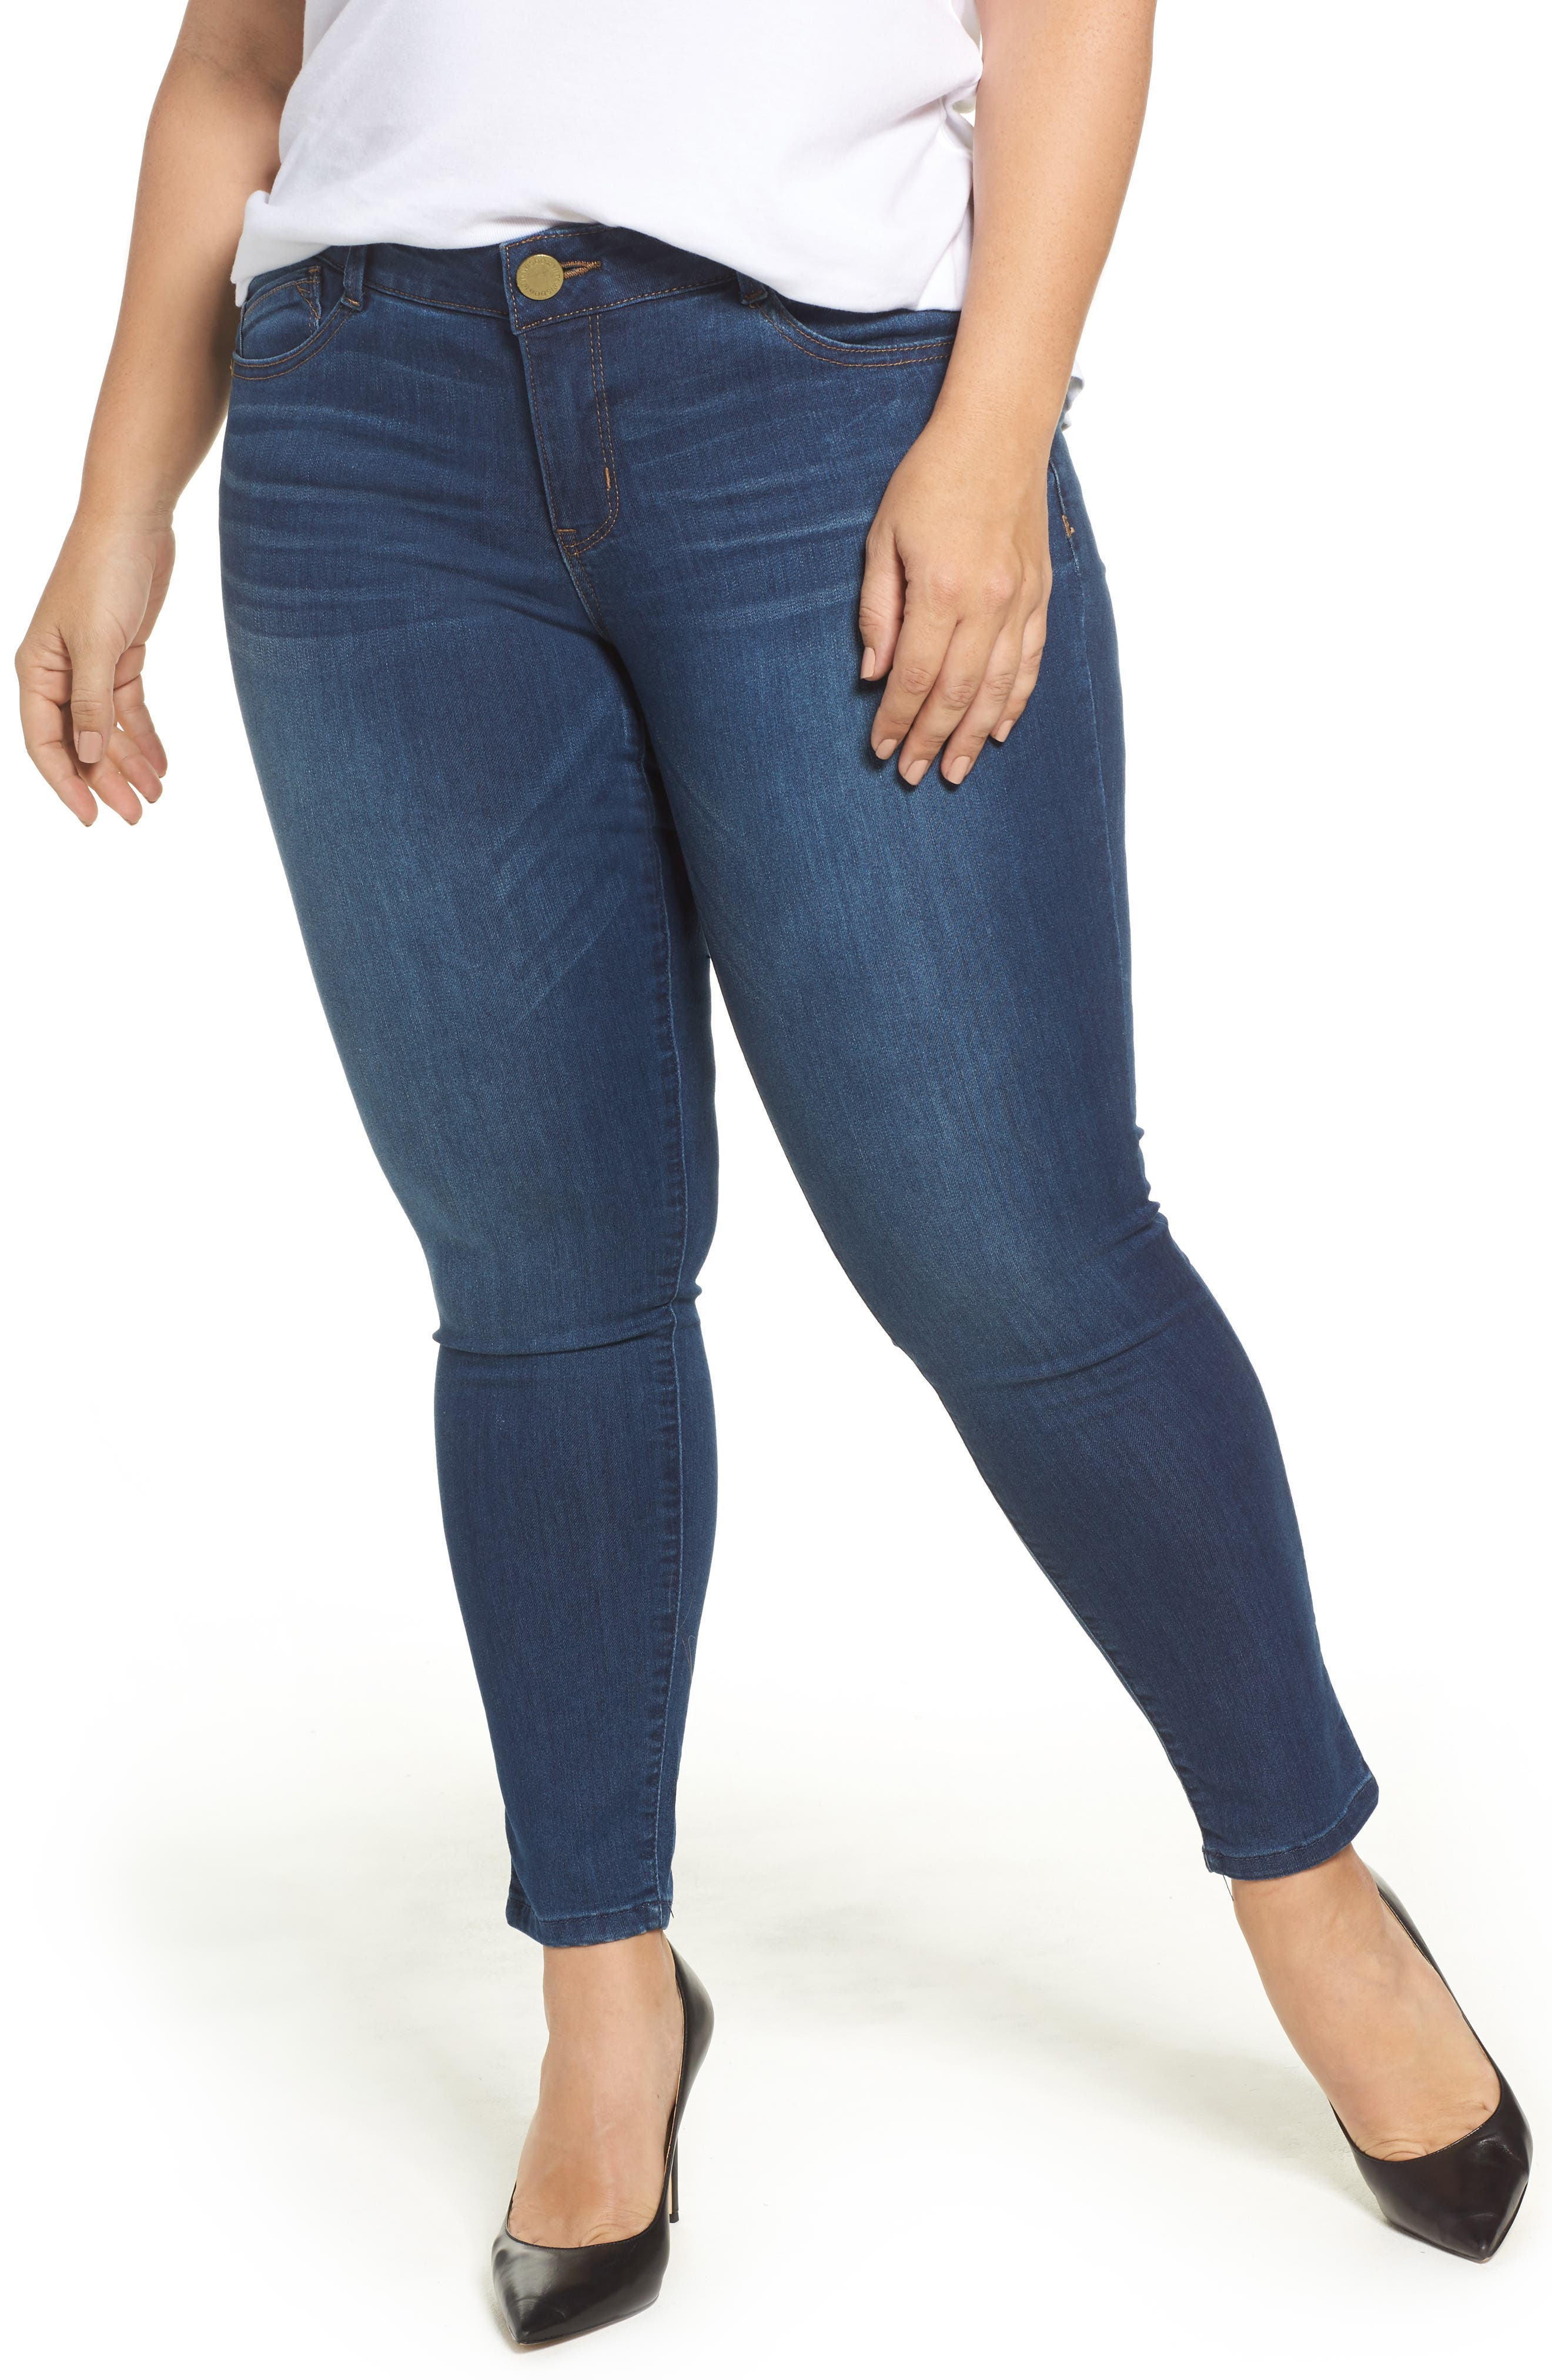 Alternate Image 1 Selected - Wit & Wisdom Ab-solution Skinny Jeans (Plus Size) (Nordstrom Exclusive)